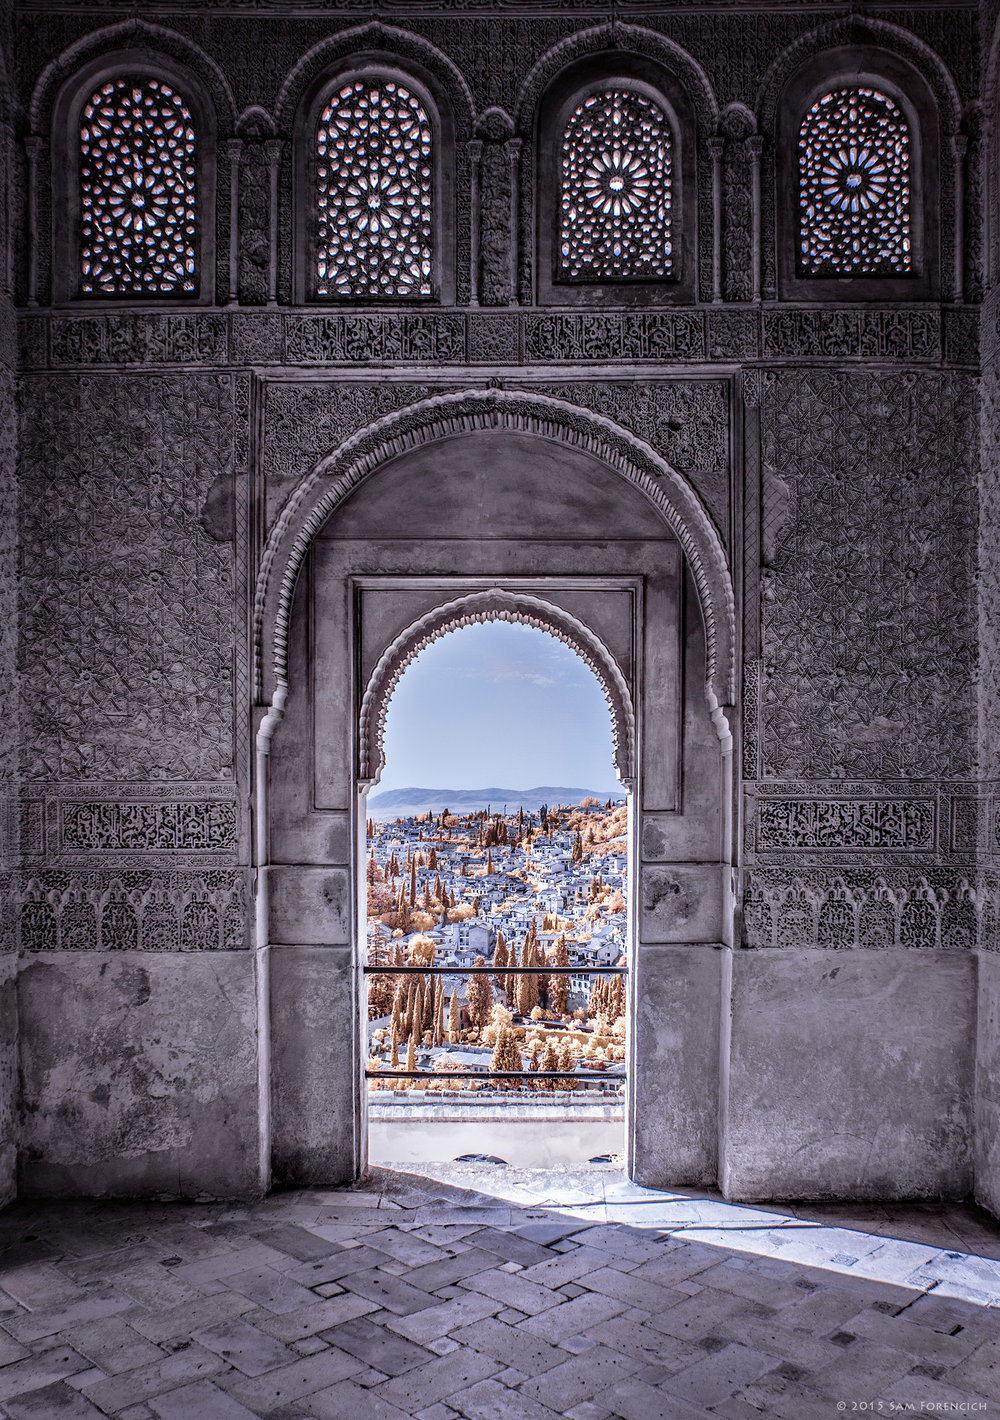 An arched passageway inside Moorish palace and fortress the Alhambra, frames a portion of the Andalusian city of Granada, Spain. The lavish ornamentation carved into the stucco consists largely of Arabic inscriptions manipulated into geometric patterns. Channel swapped infrared, IR converted Canon 5D Mark II.  ©2015 Sam Forencich